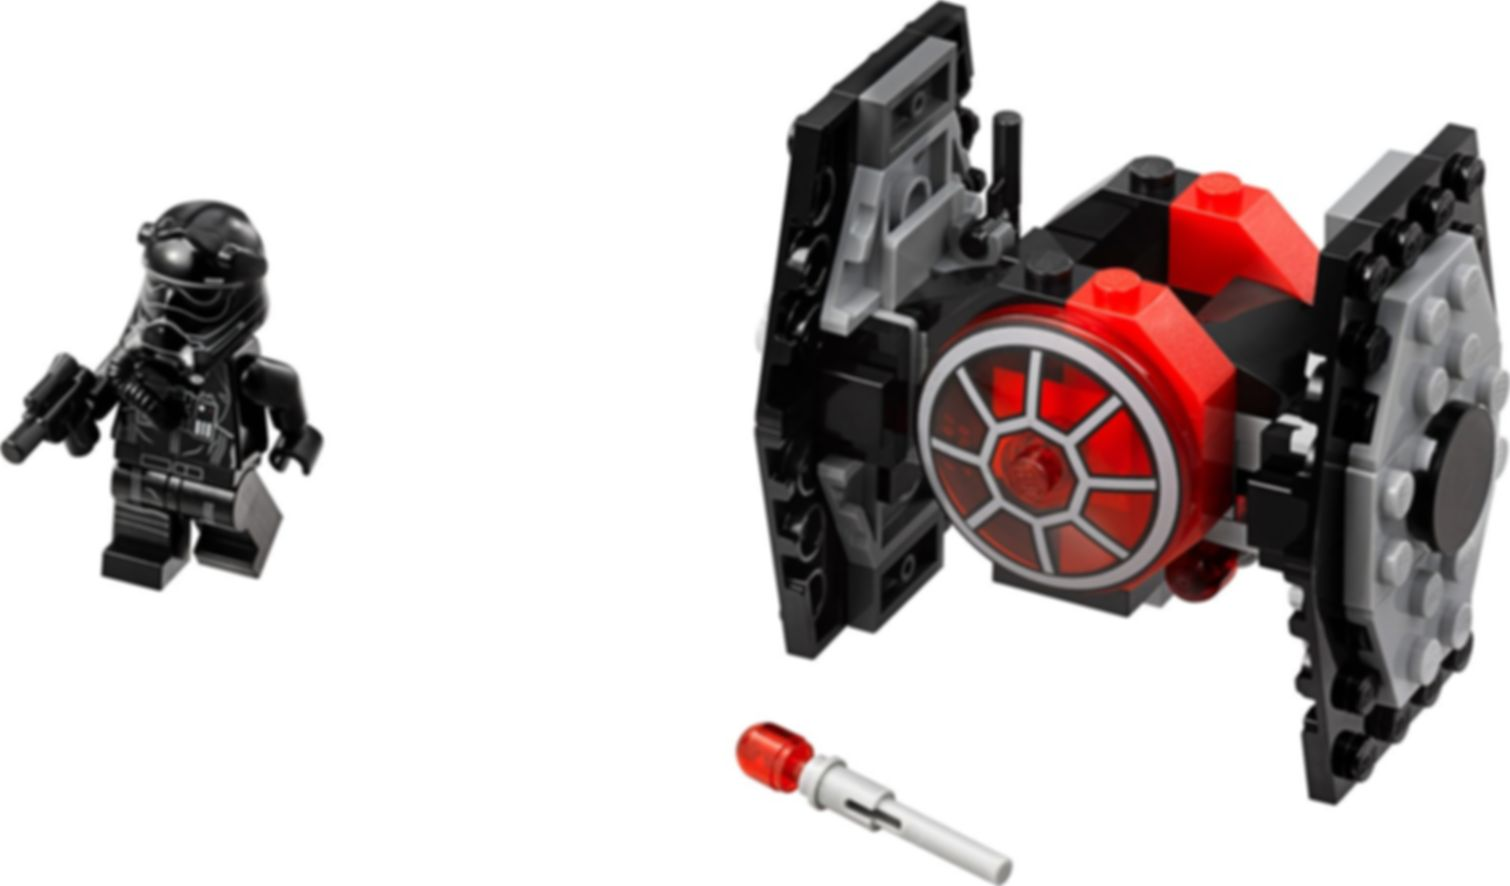 First Order TIE Fighter™ Microfighter components